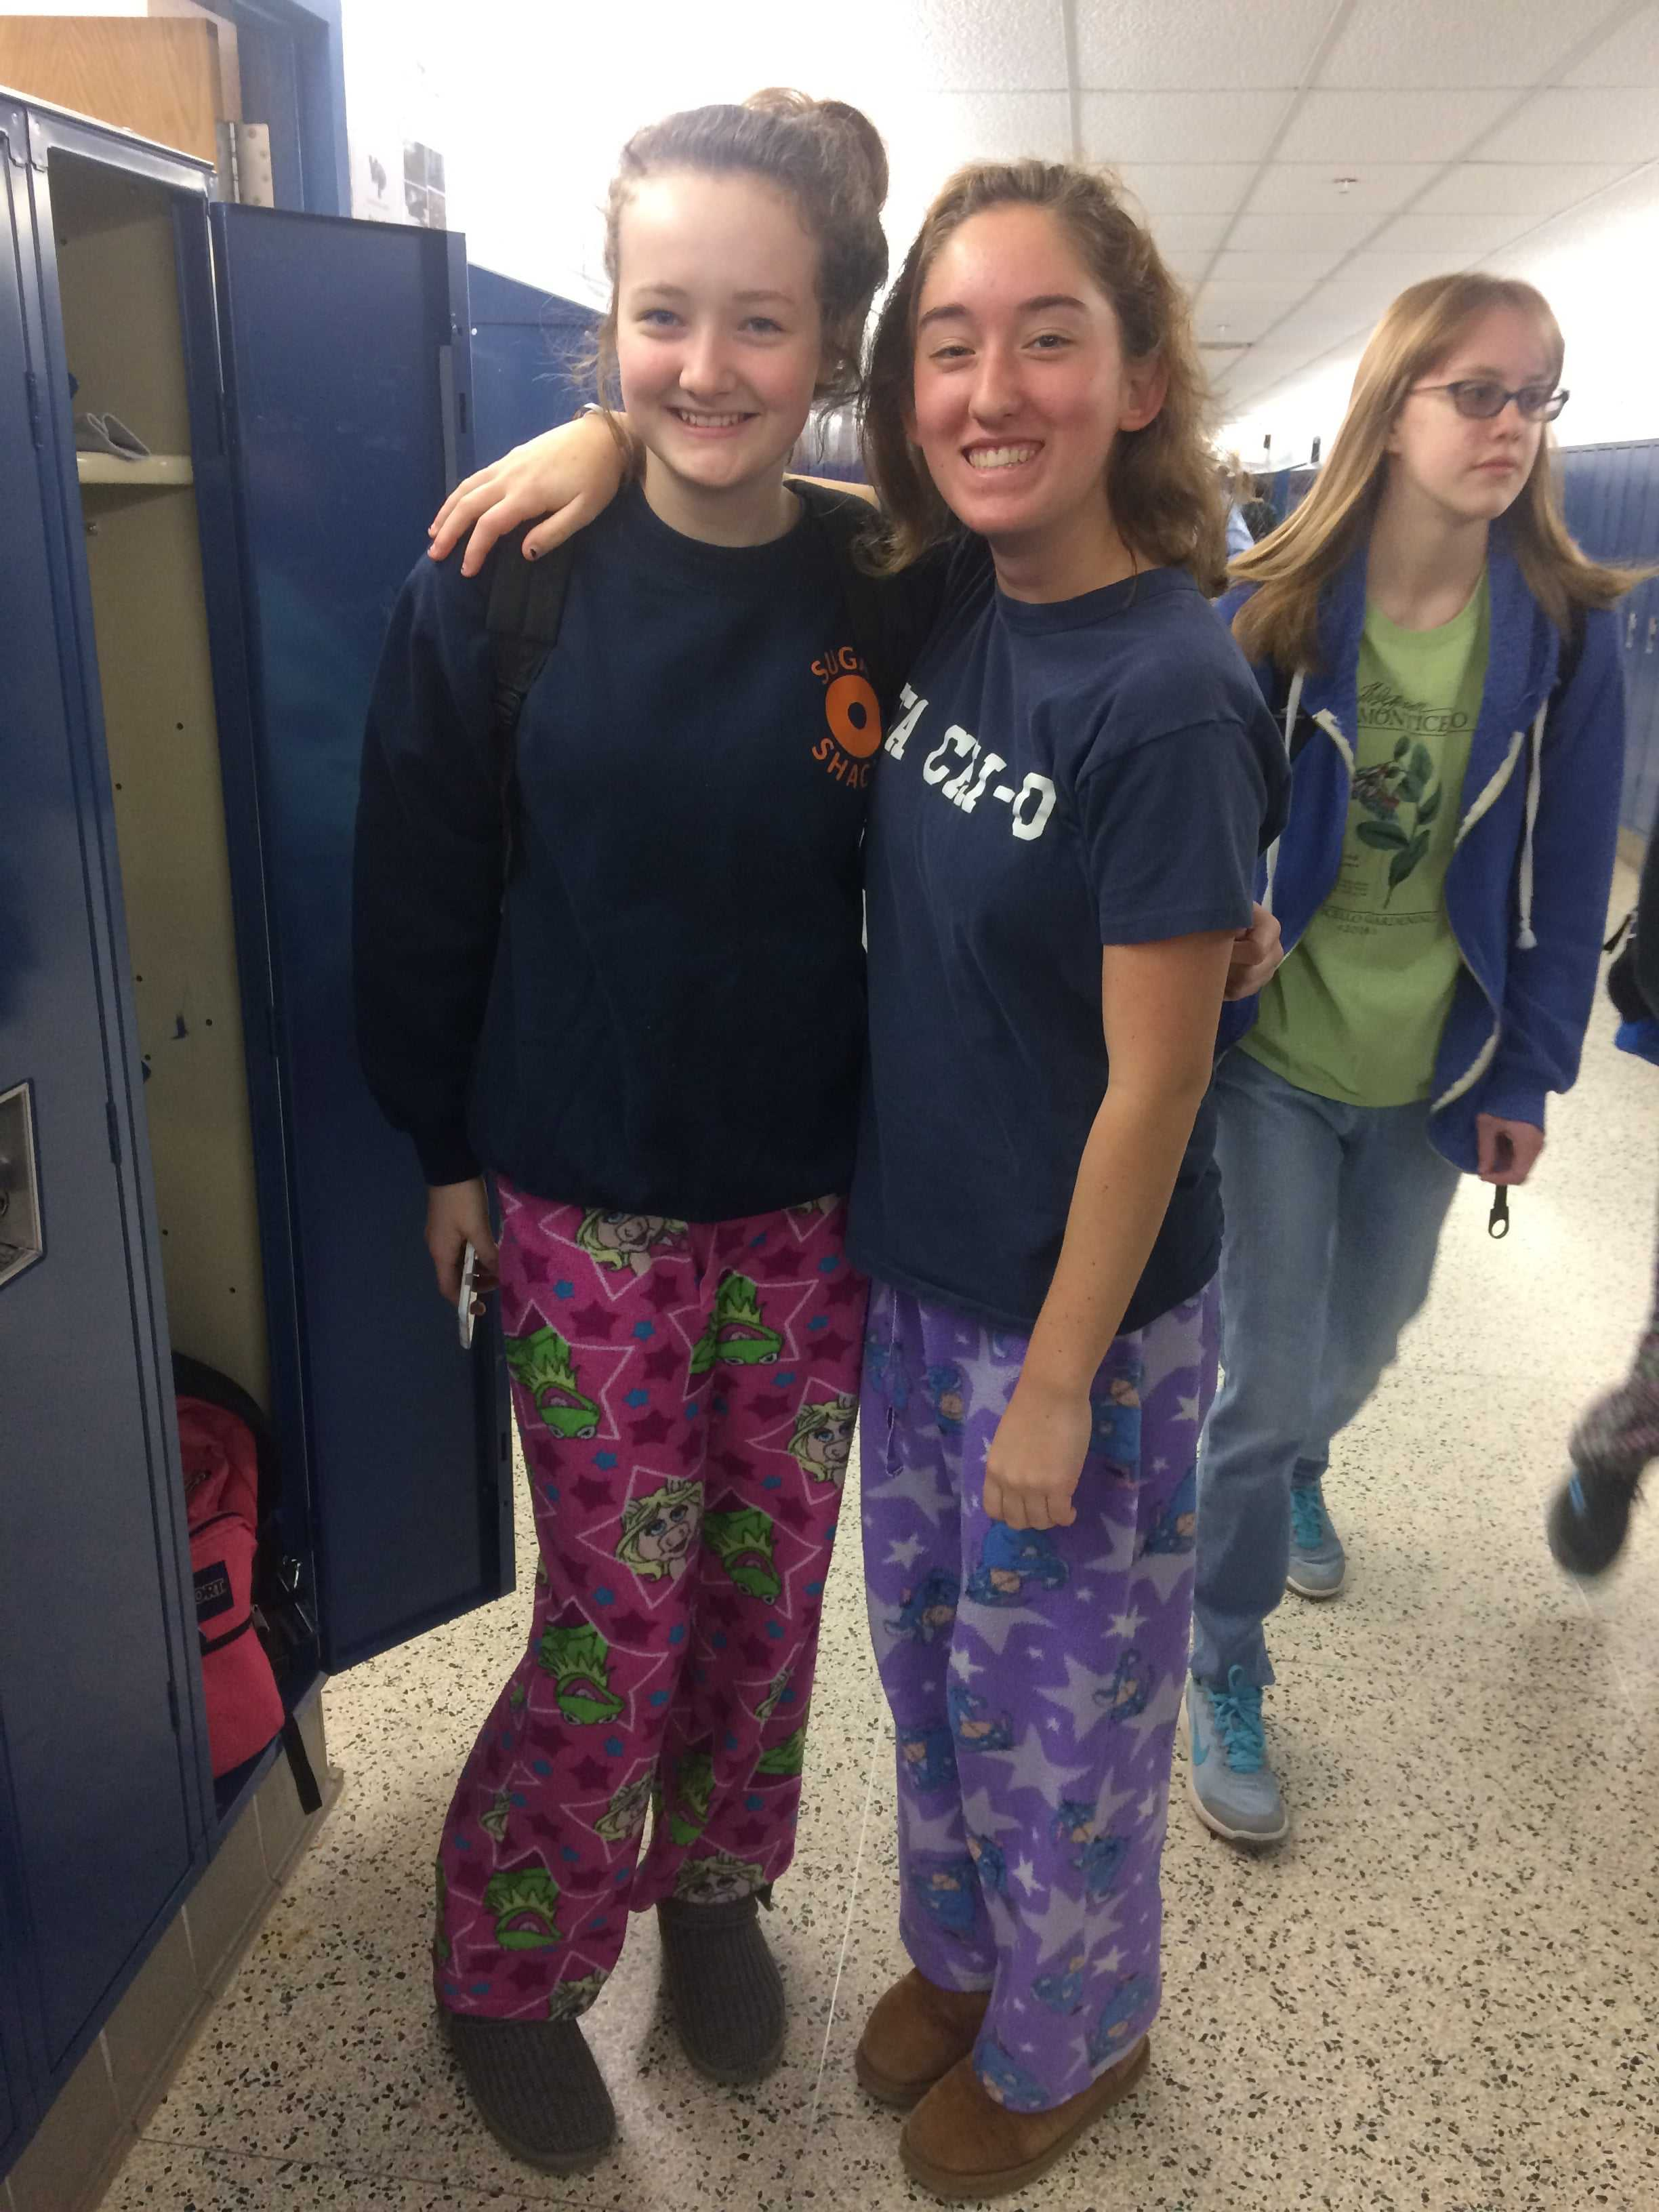 Pajama+Day%3A+Grace+O%27Donnell+%28Freshman%29%2C+Julia+Helal+%28Sophomore%29+